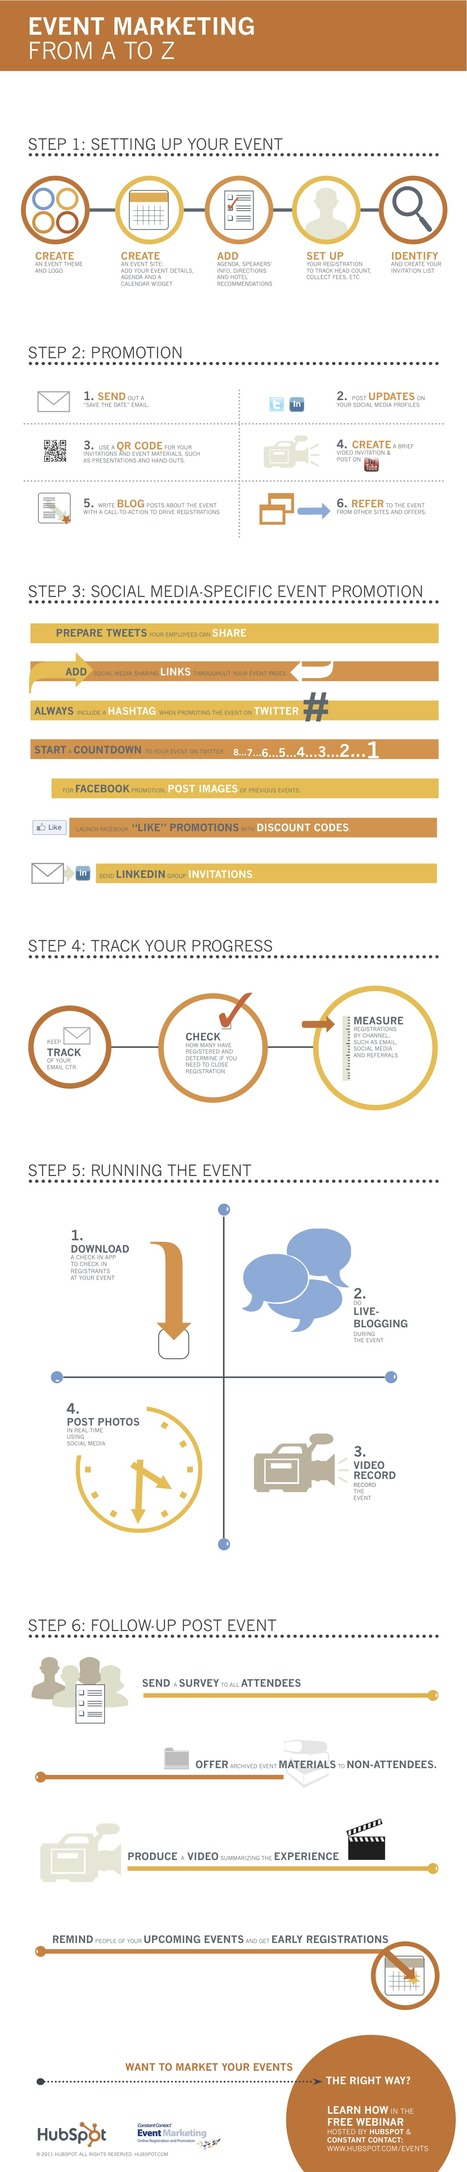 Event Marketing From A to Z [Infographic] | EPIC Infographic | Scoop.it